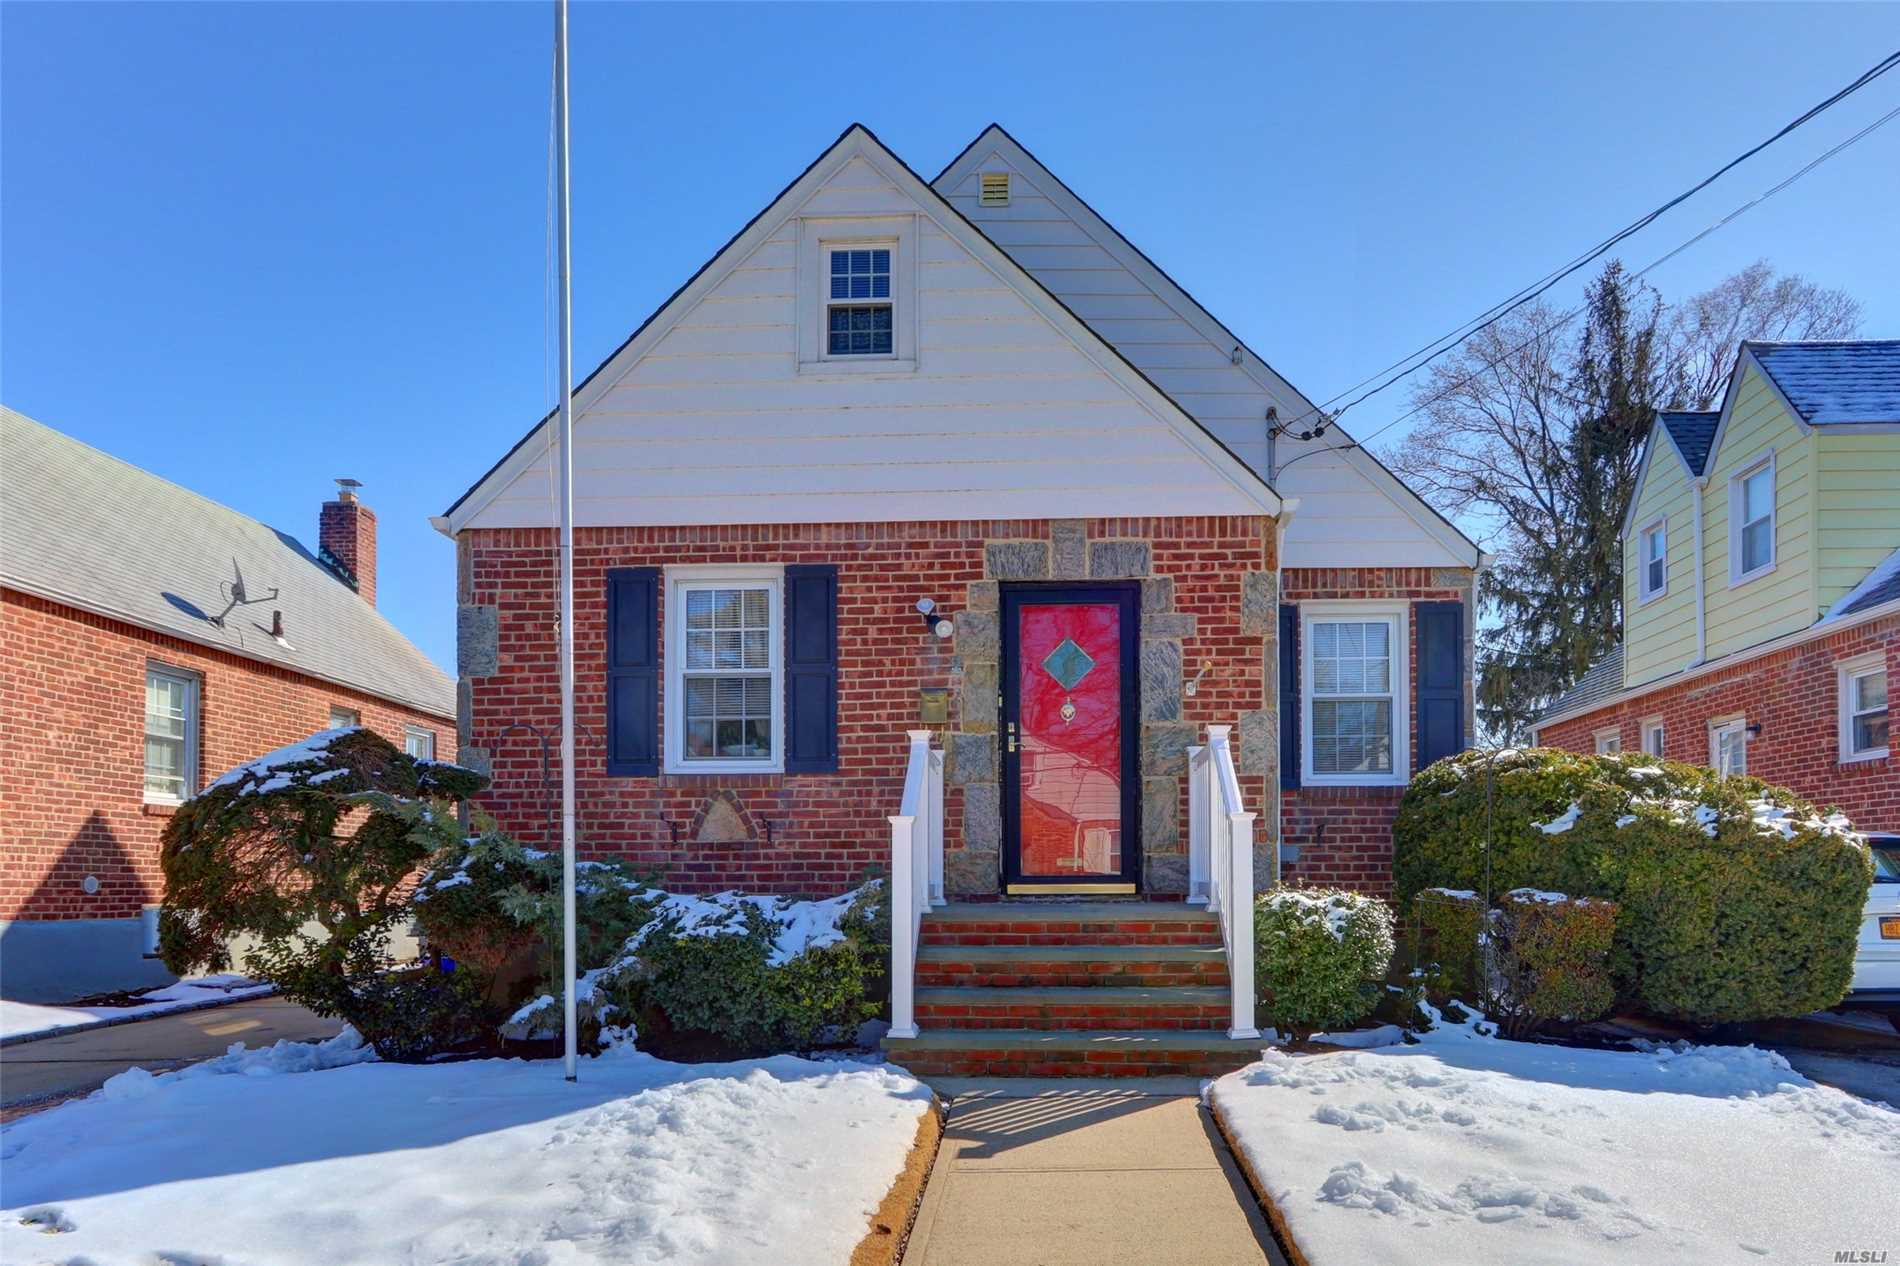 Sunny, Solid and Exceptionally Clean Cape Cod Home. Perfect Starter Home. Great Location. Near Village, Lirr, Mta Bus Stops & Airport. Low Taxes!